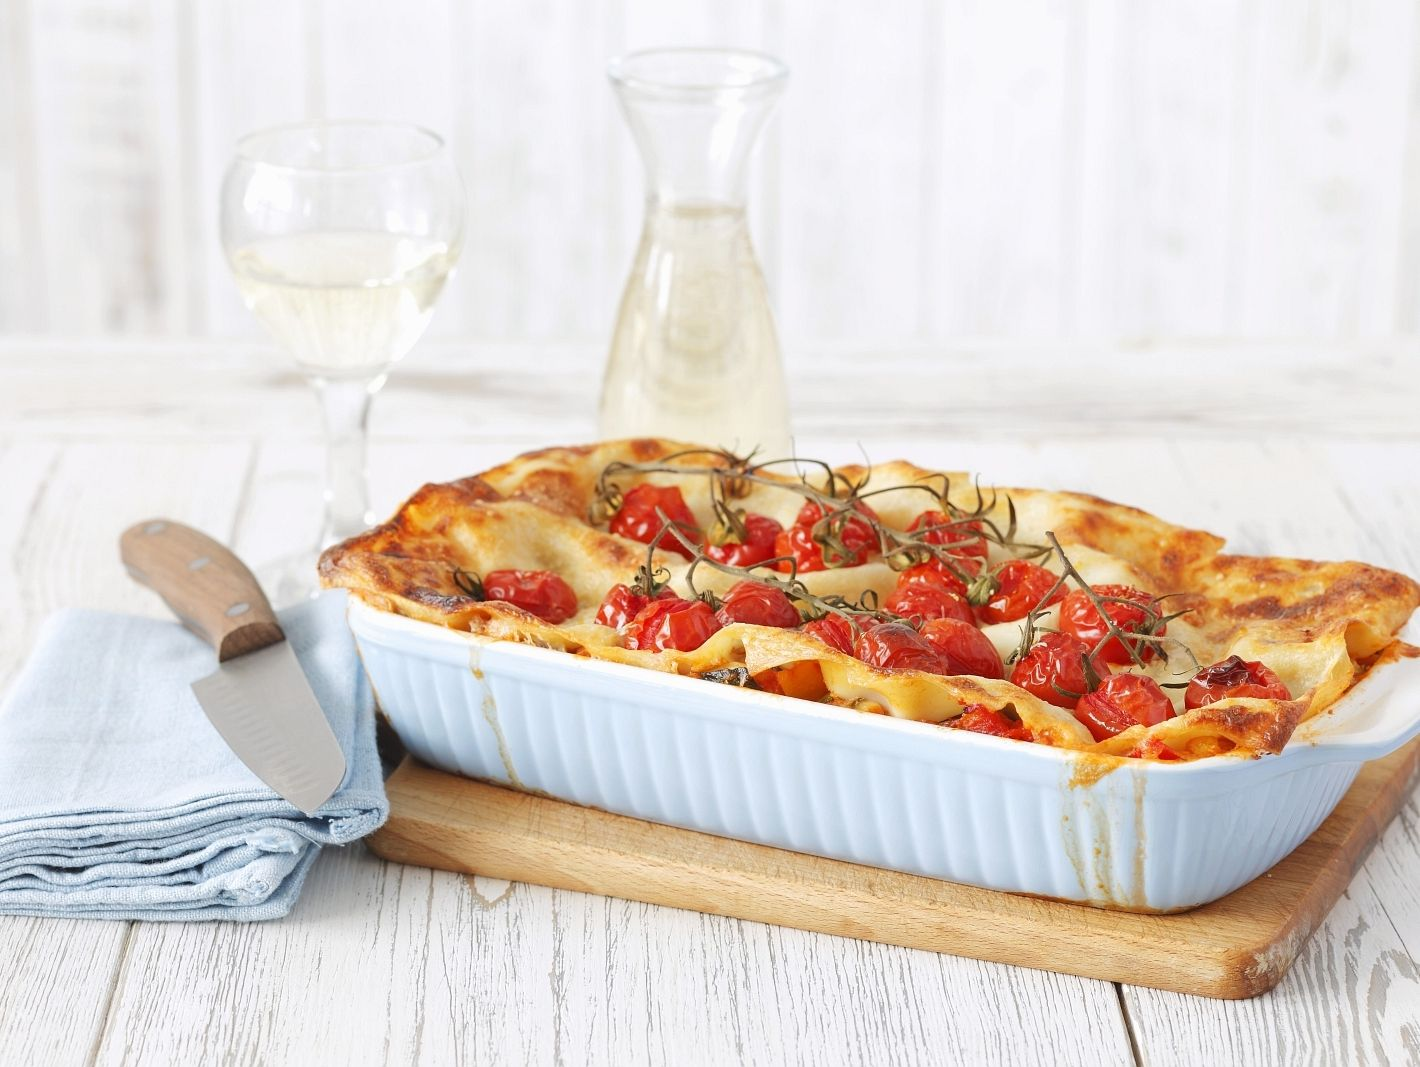 vegetarische lasagne mit kirschtomaten rezept vegetarische rezepte pinterest lasagne. Black Bedroom Furniture Sets. Home Design Ideas